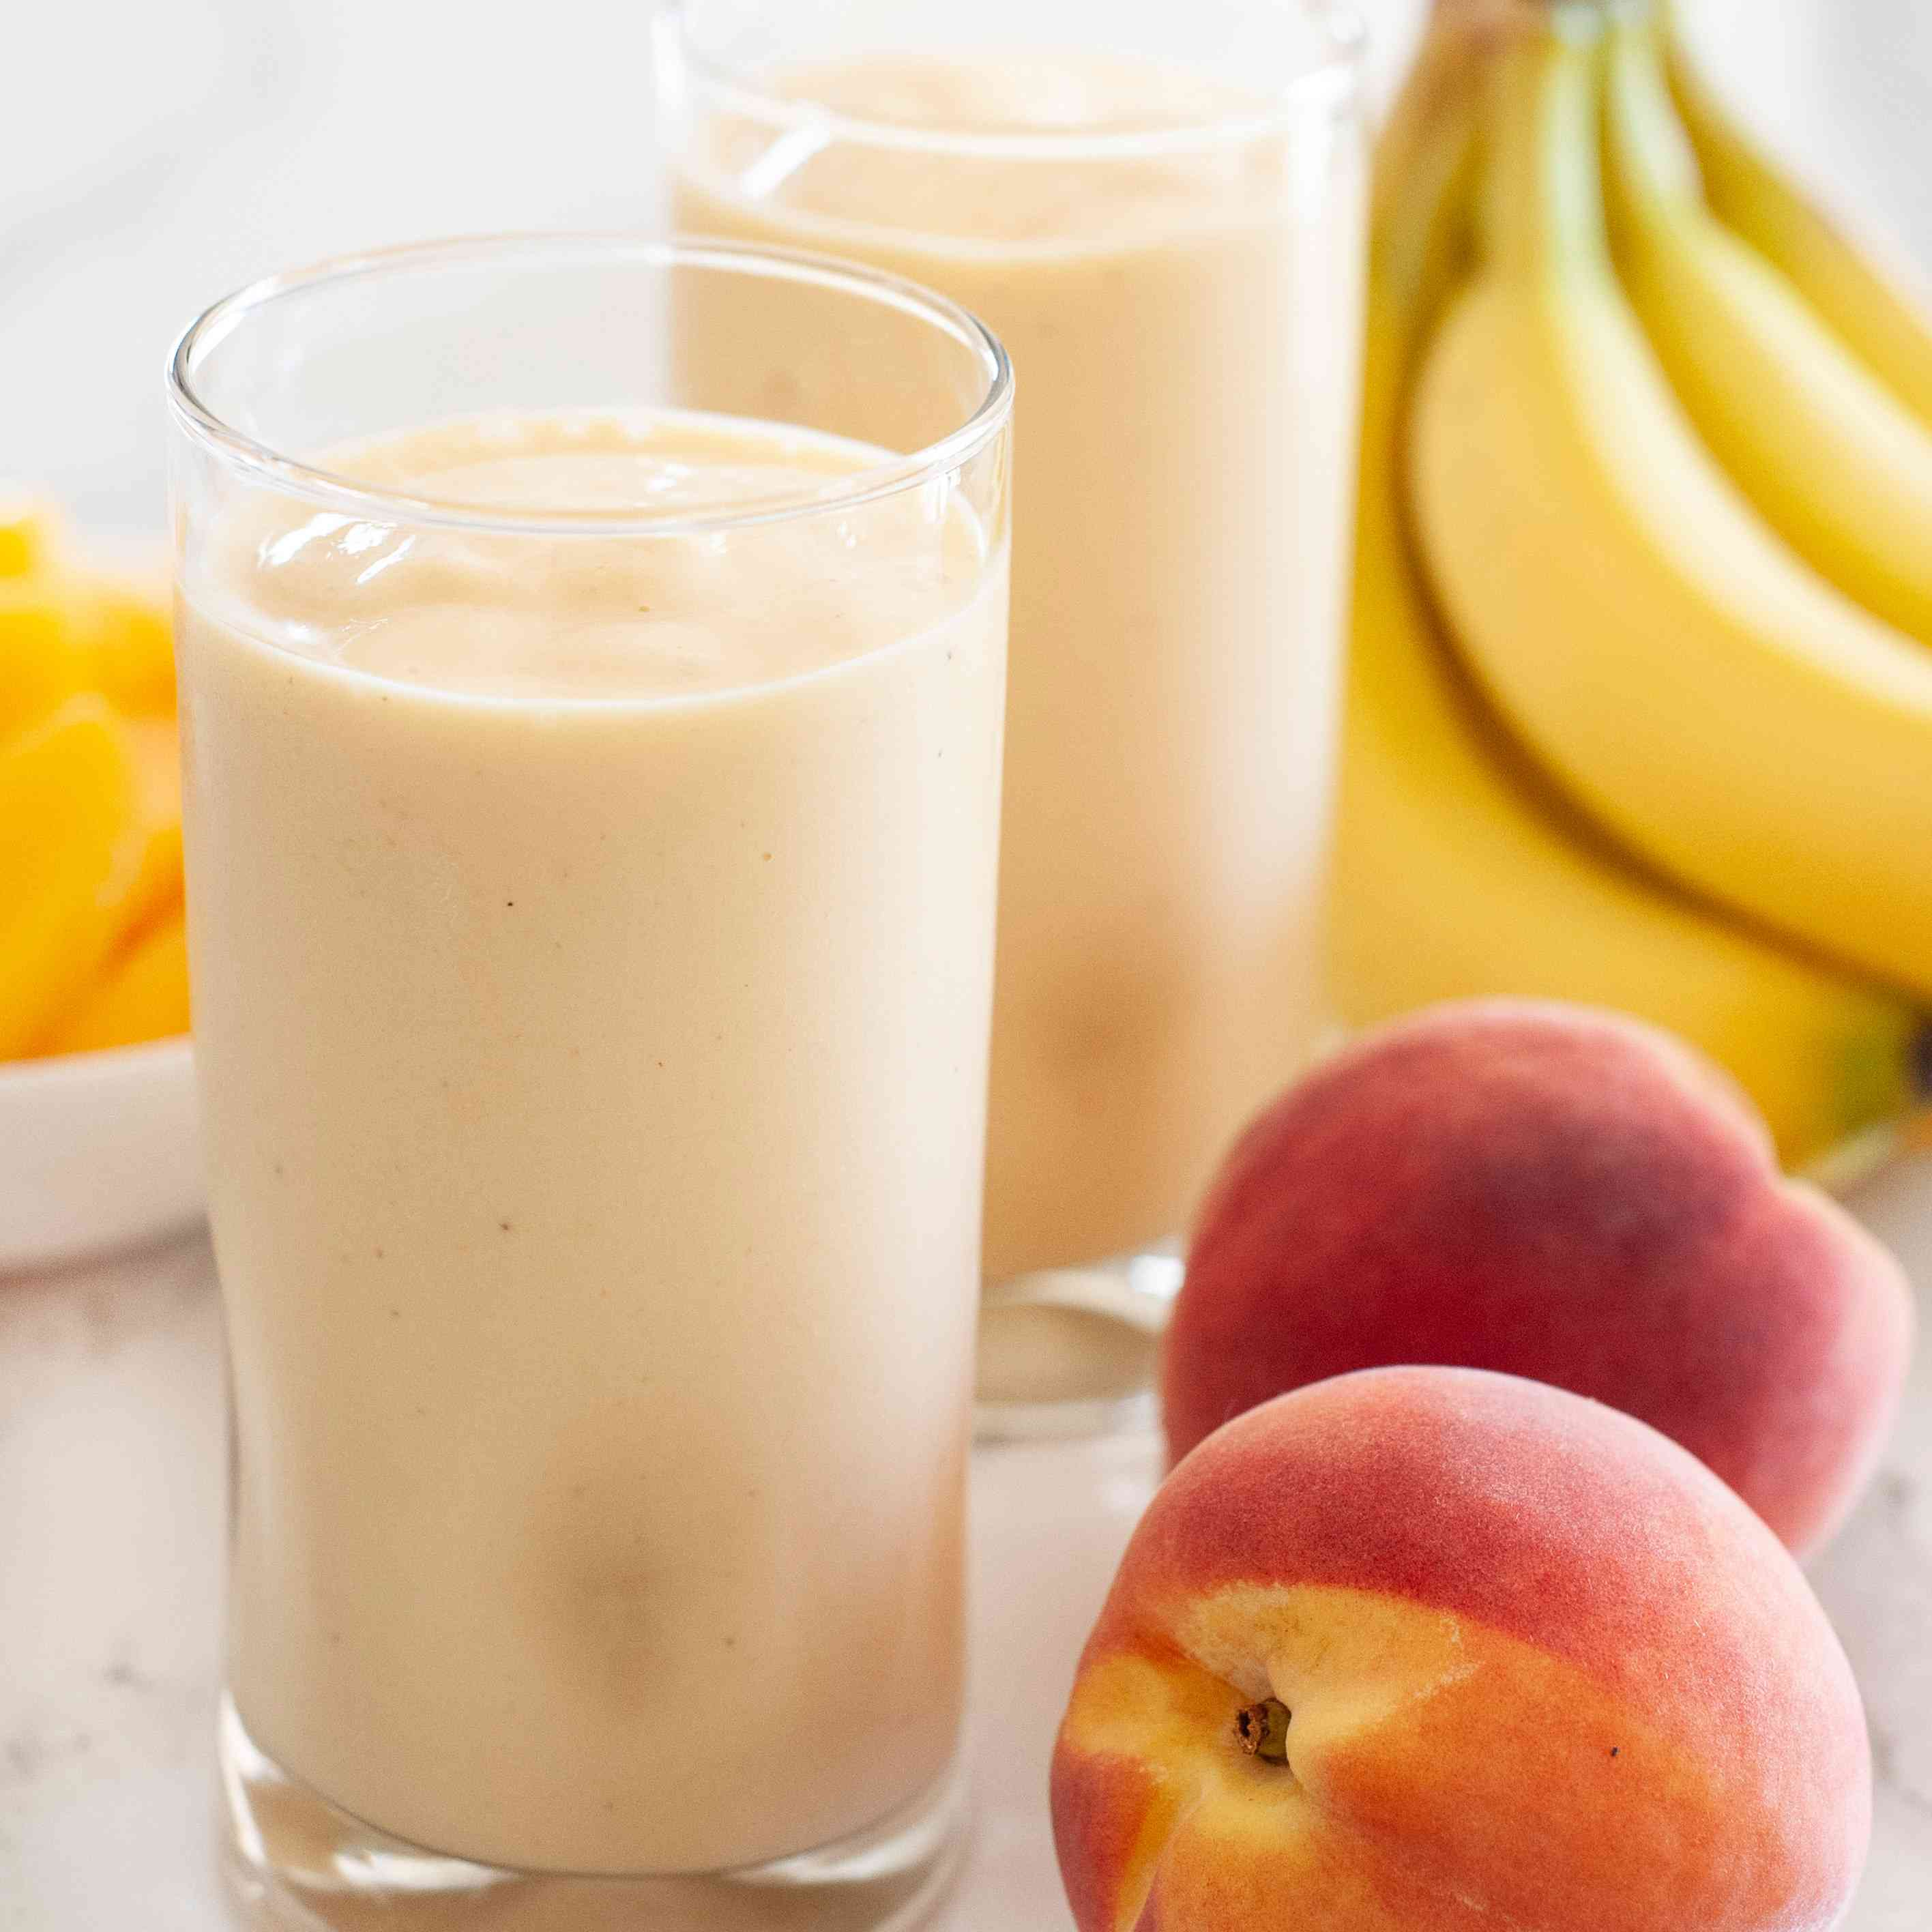 Peach smoothie with almond butter in glasses with fresh peaches and bananas to the right.